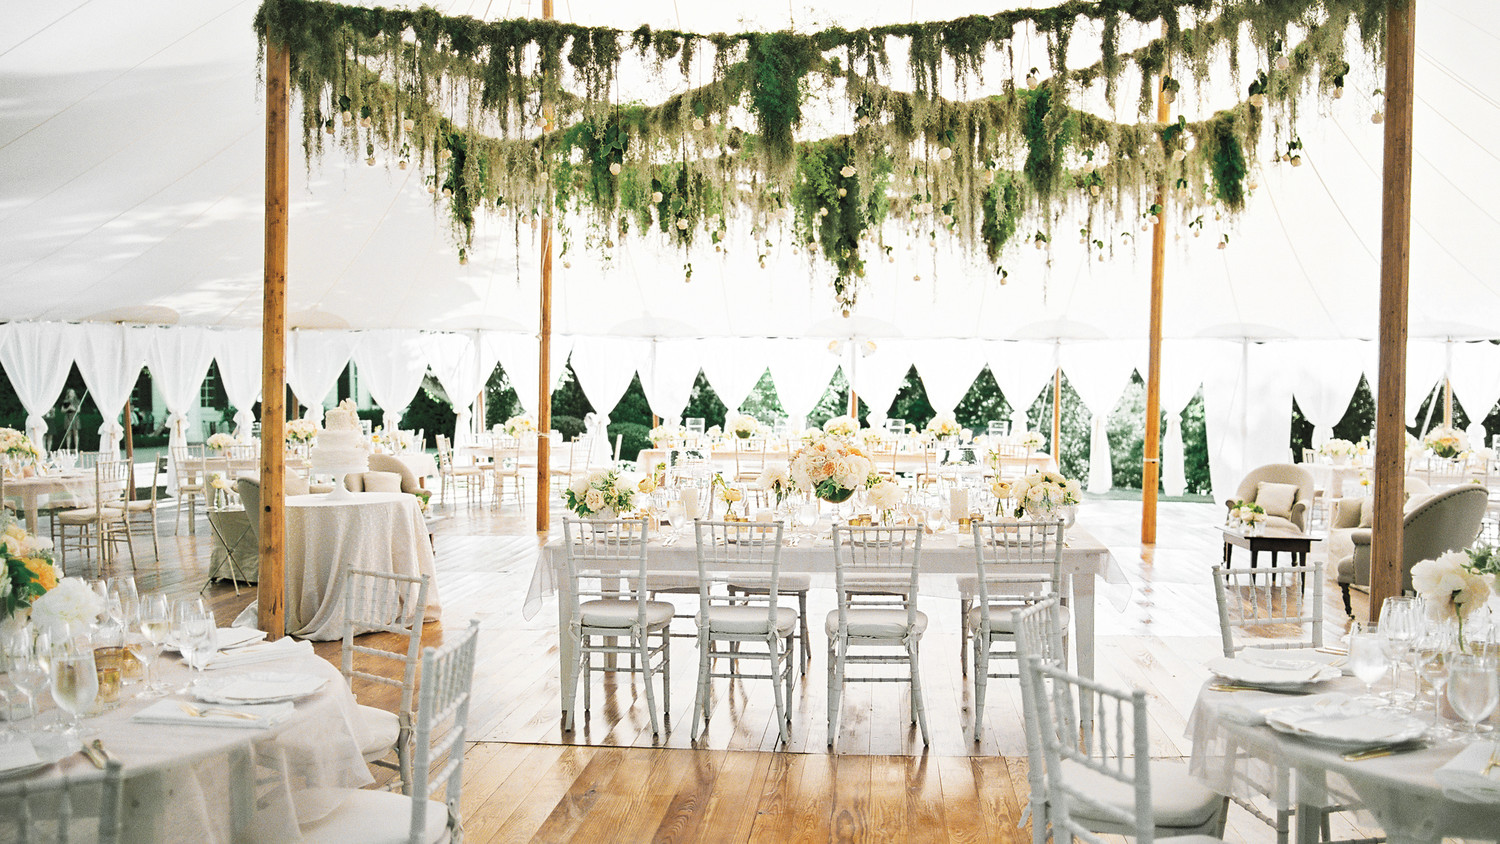 28 Tent Decorating Ideas That Will Upgrade Your Wedding Reception | Martha Stewart Weddings & 28 Tent Decorating Ideas That Will Upgrade Your Wedding Reception ...